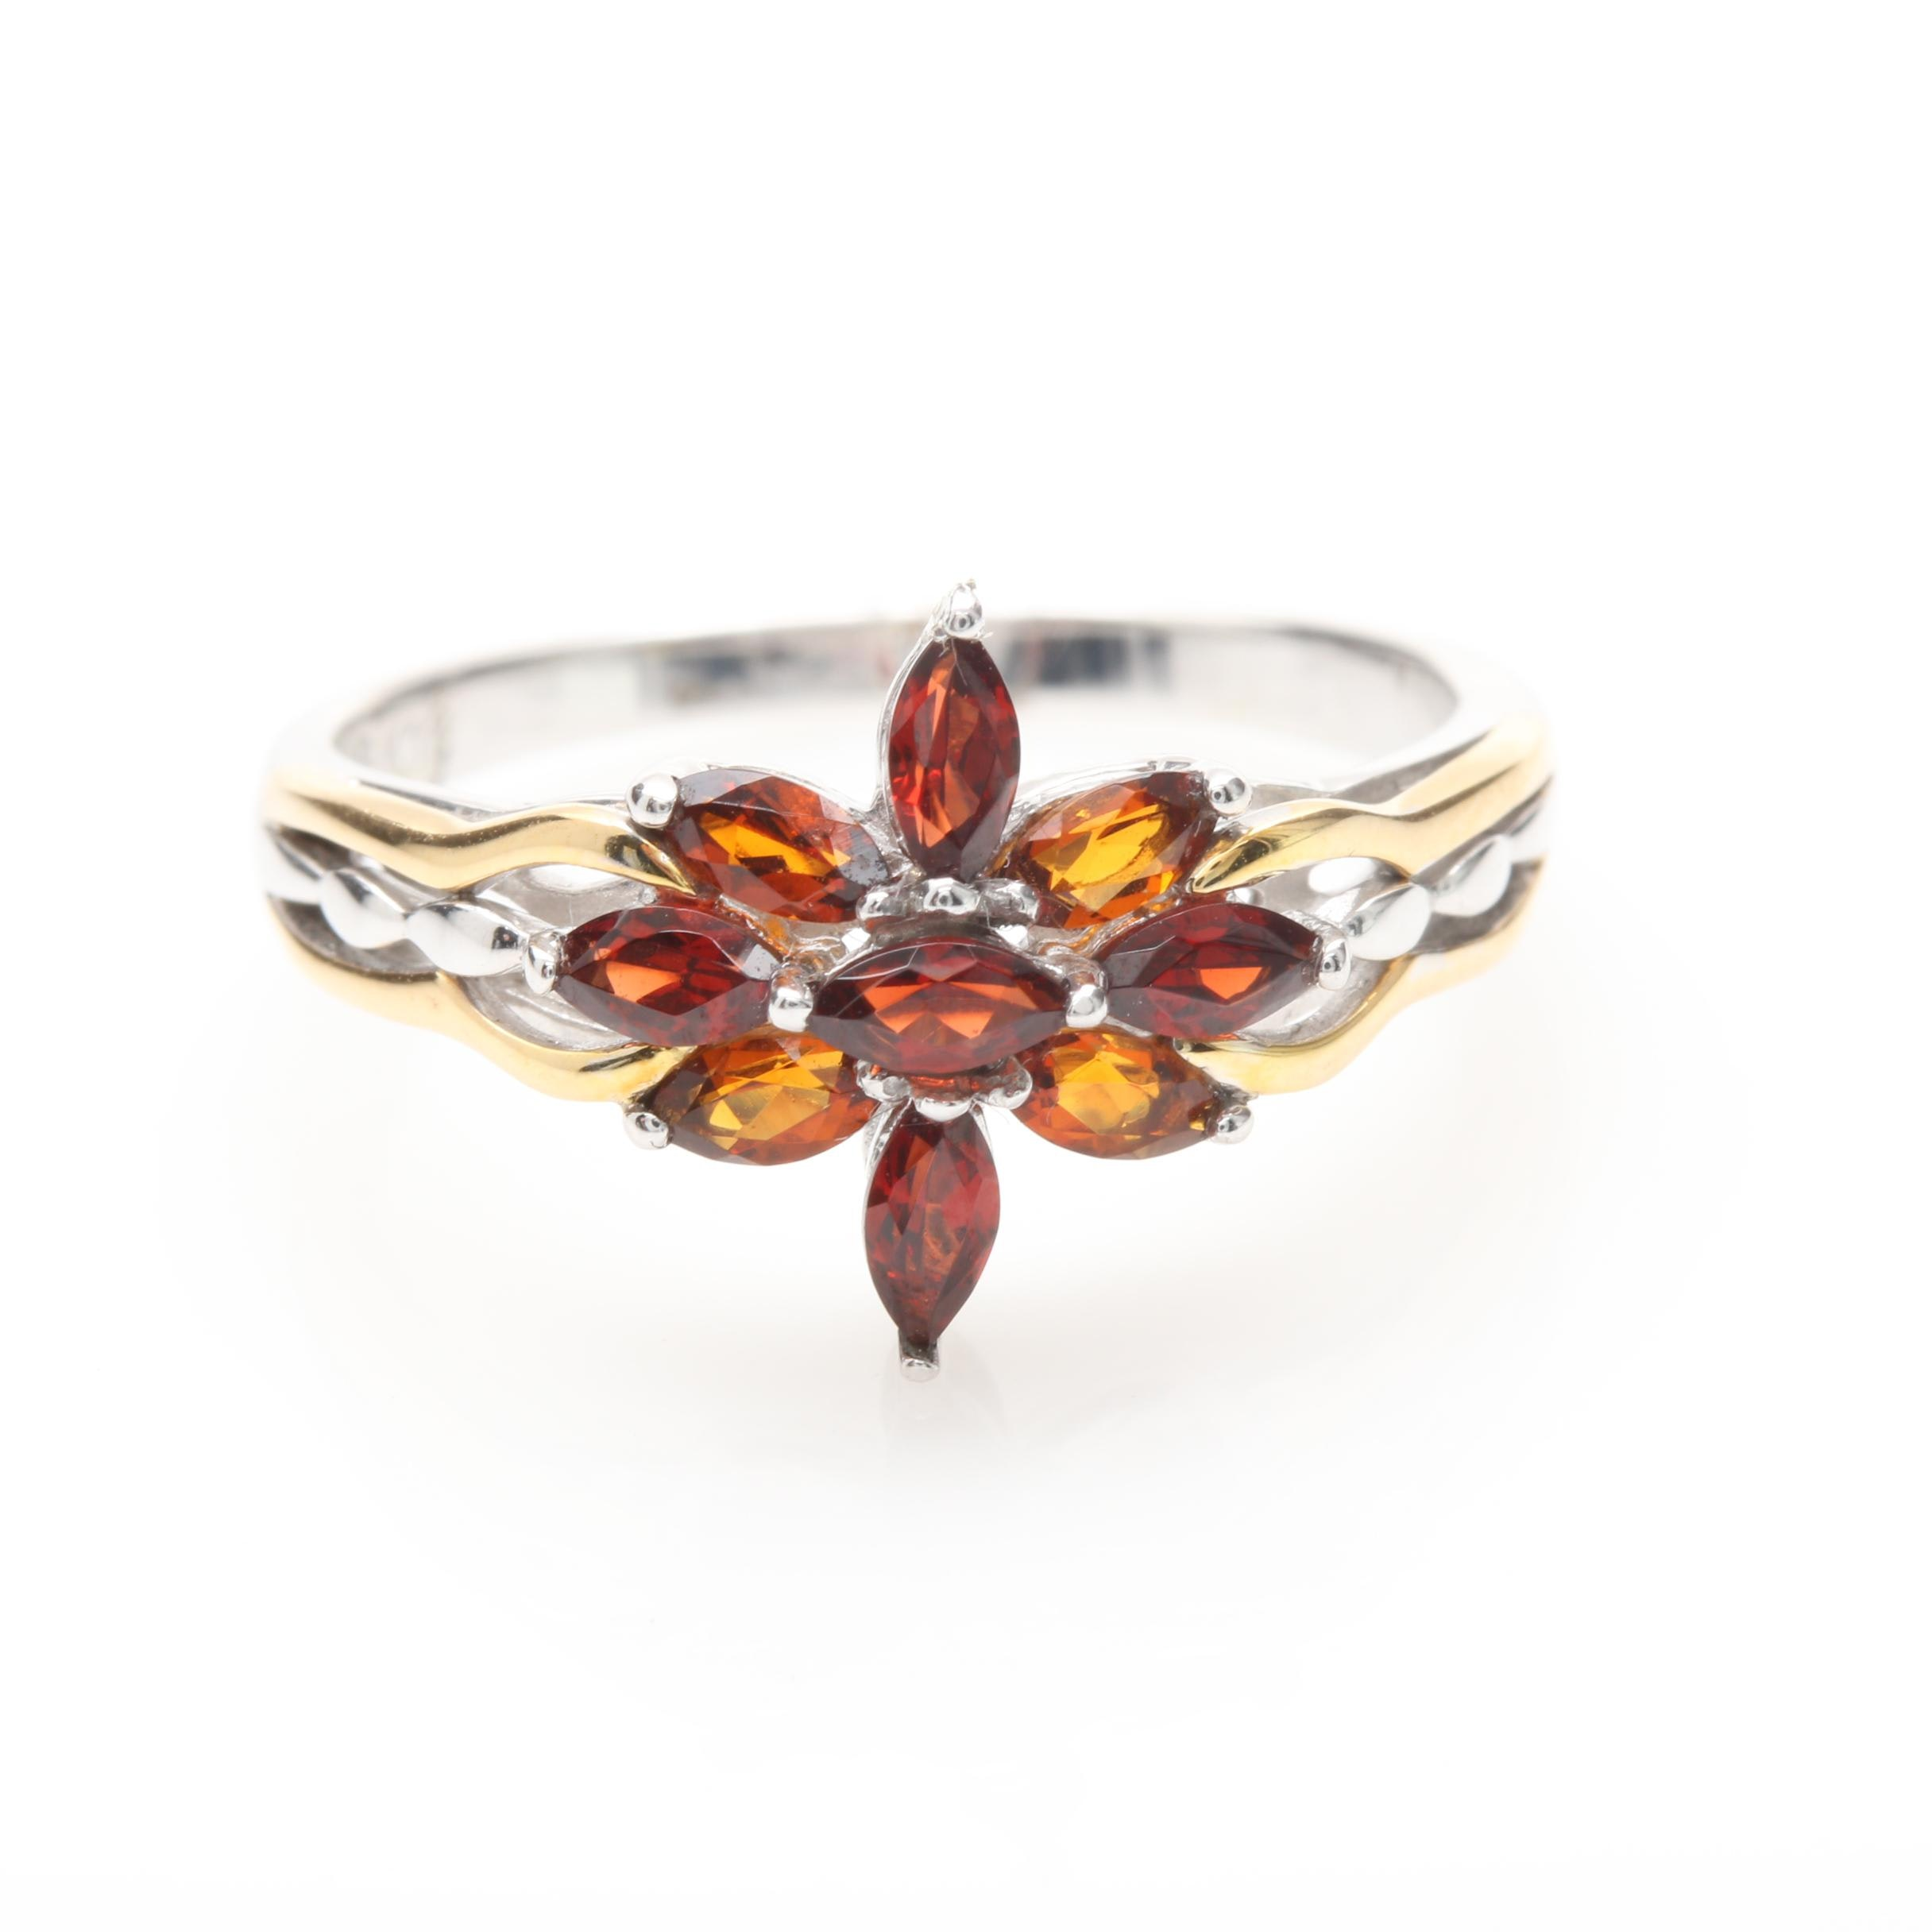 18K White Gold Garnet Floral Ring with Yellow Gold Accents